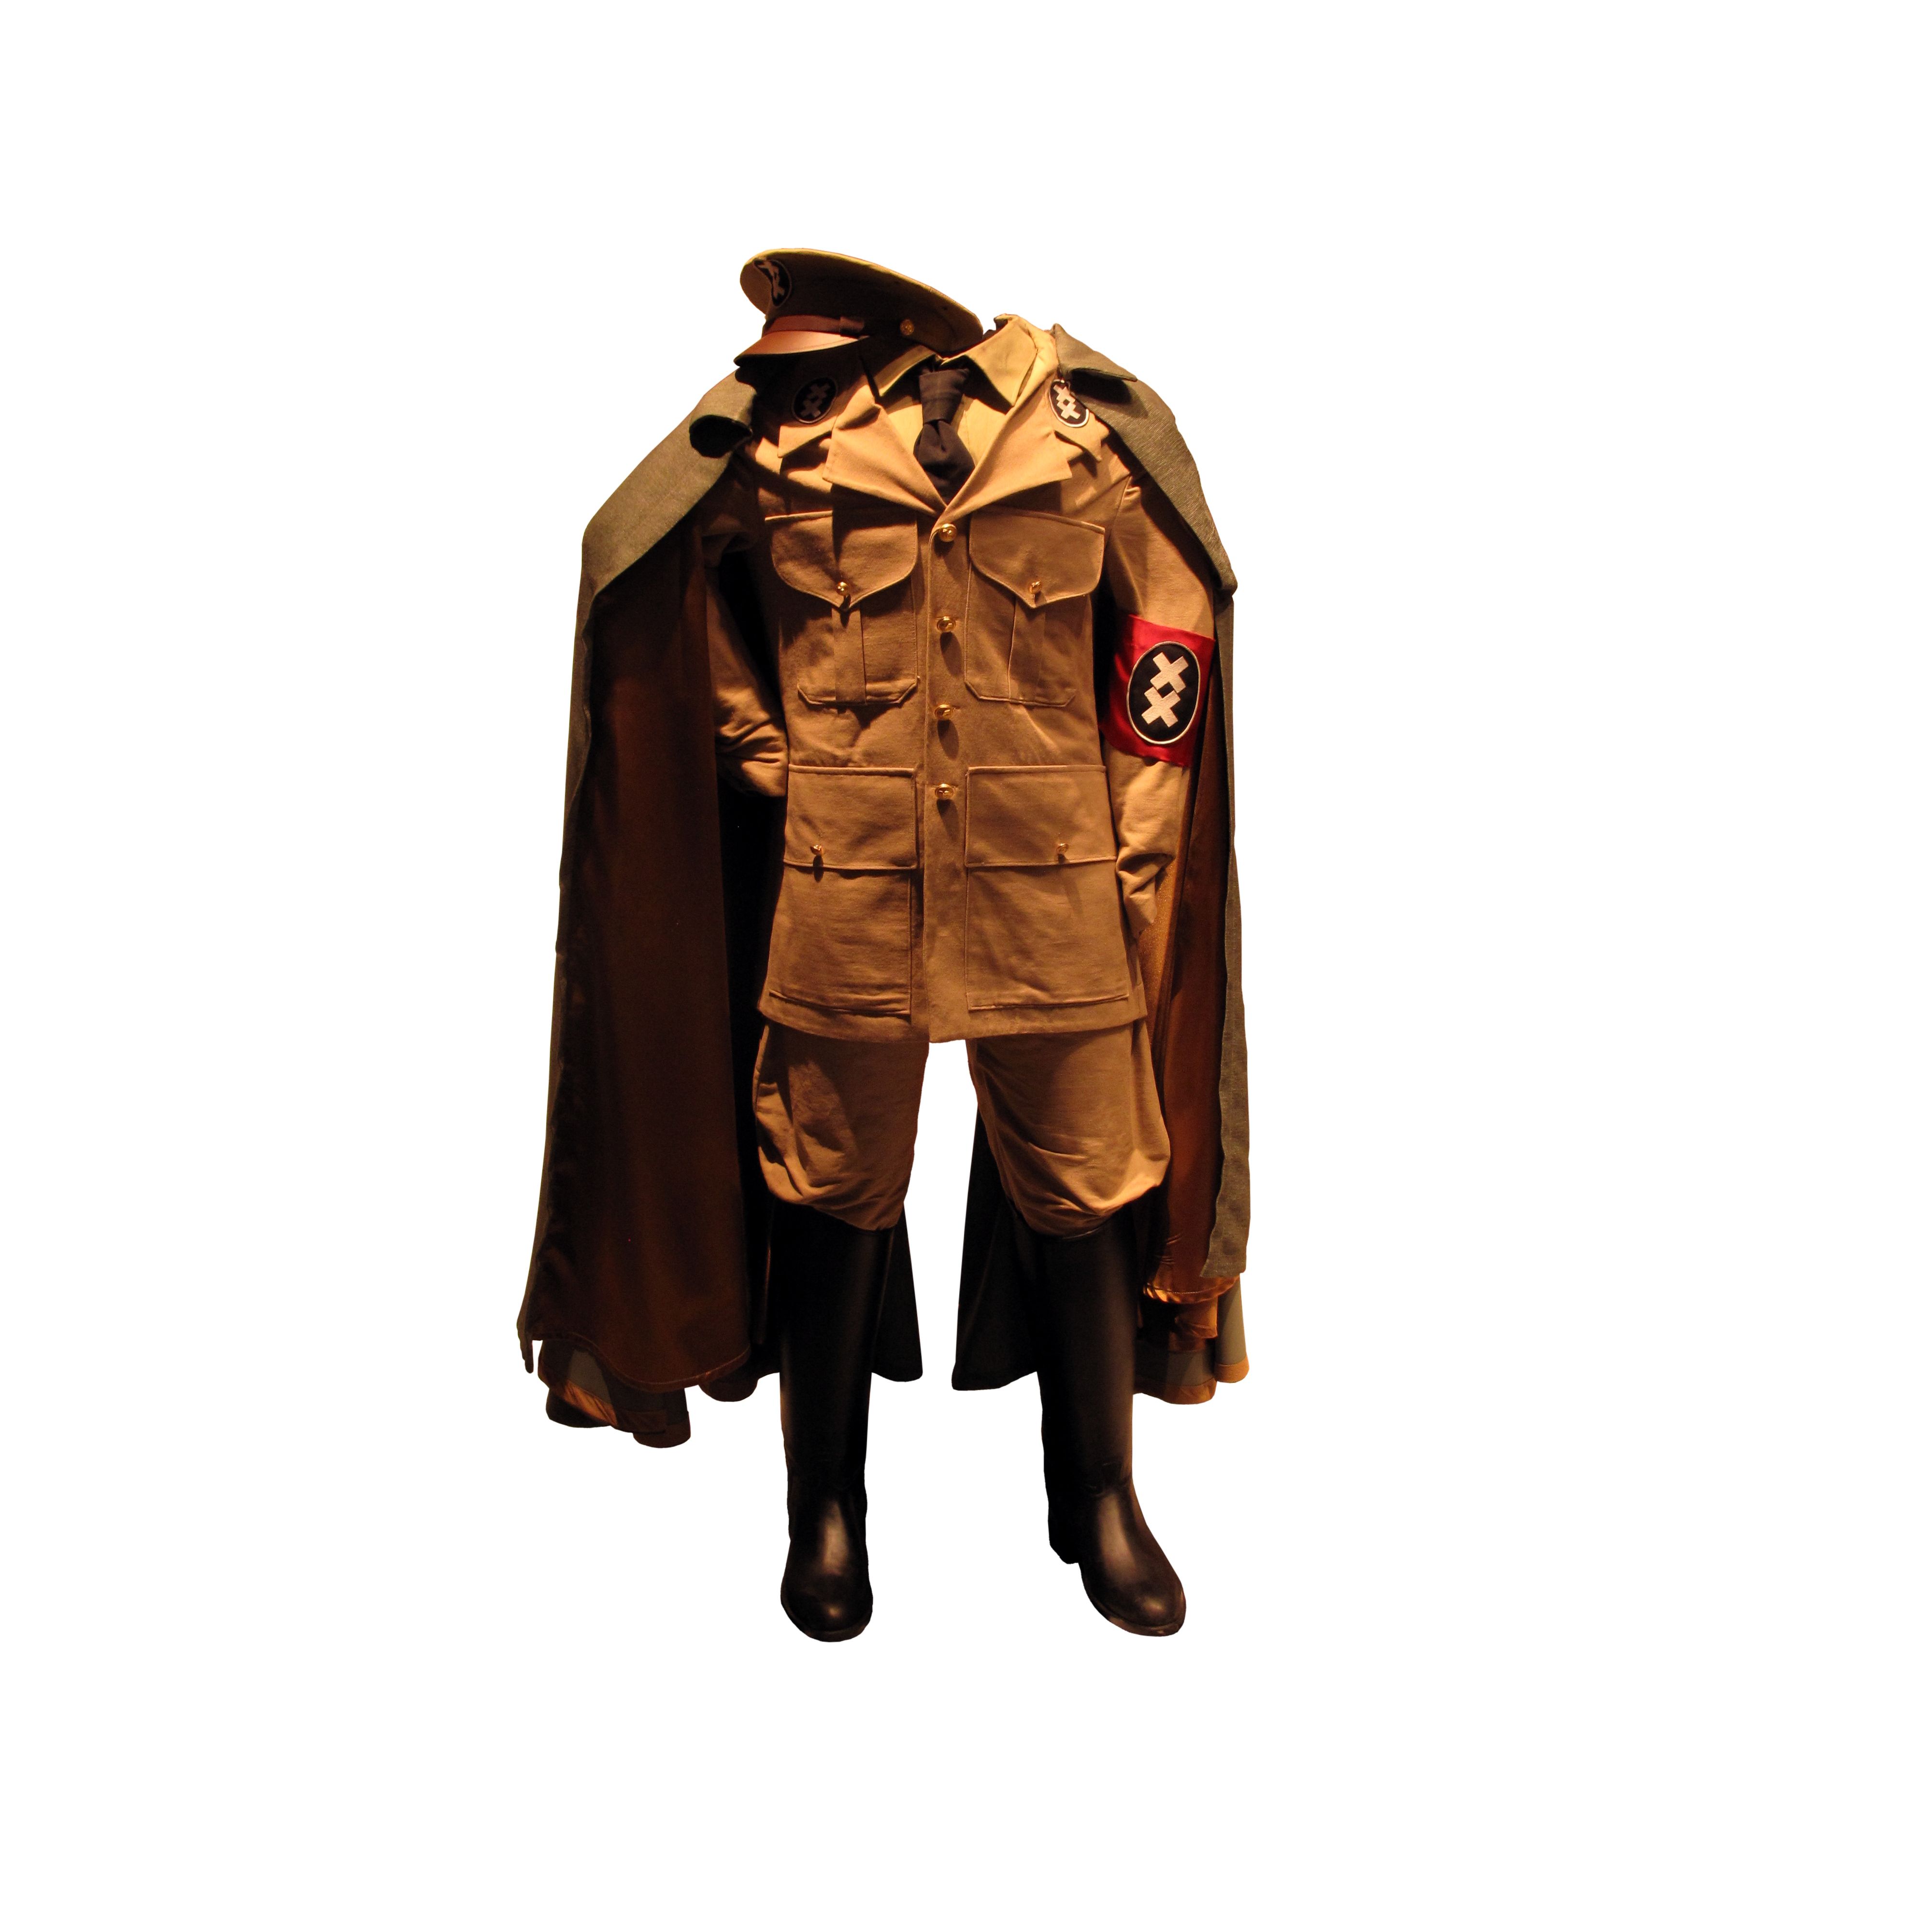 dictator uniform